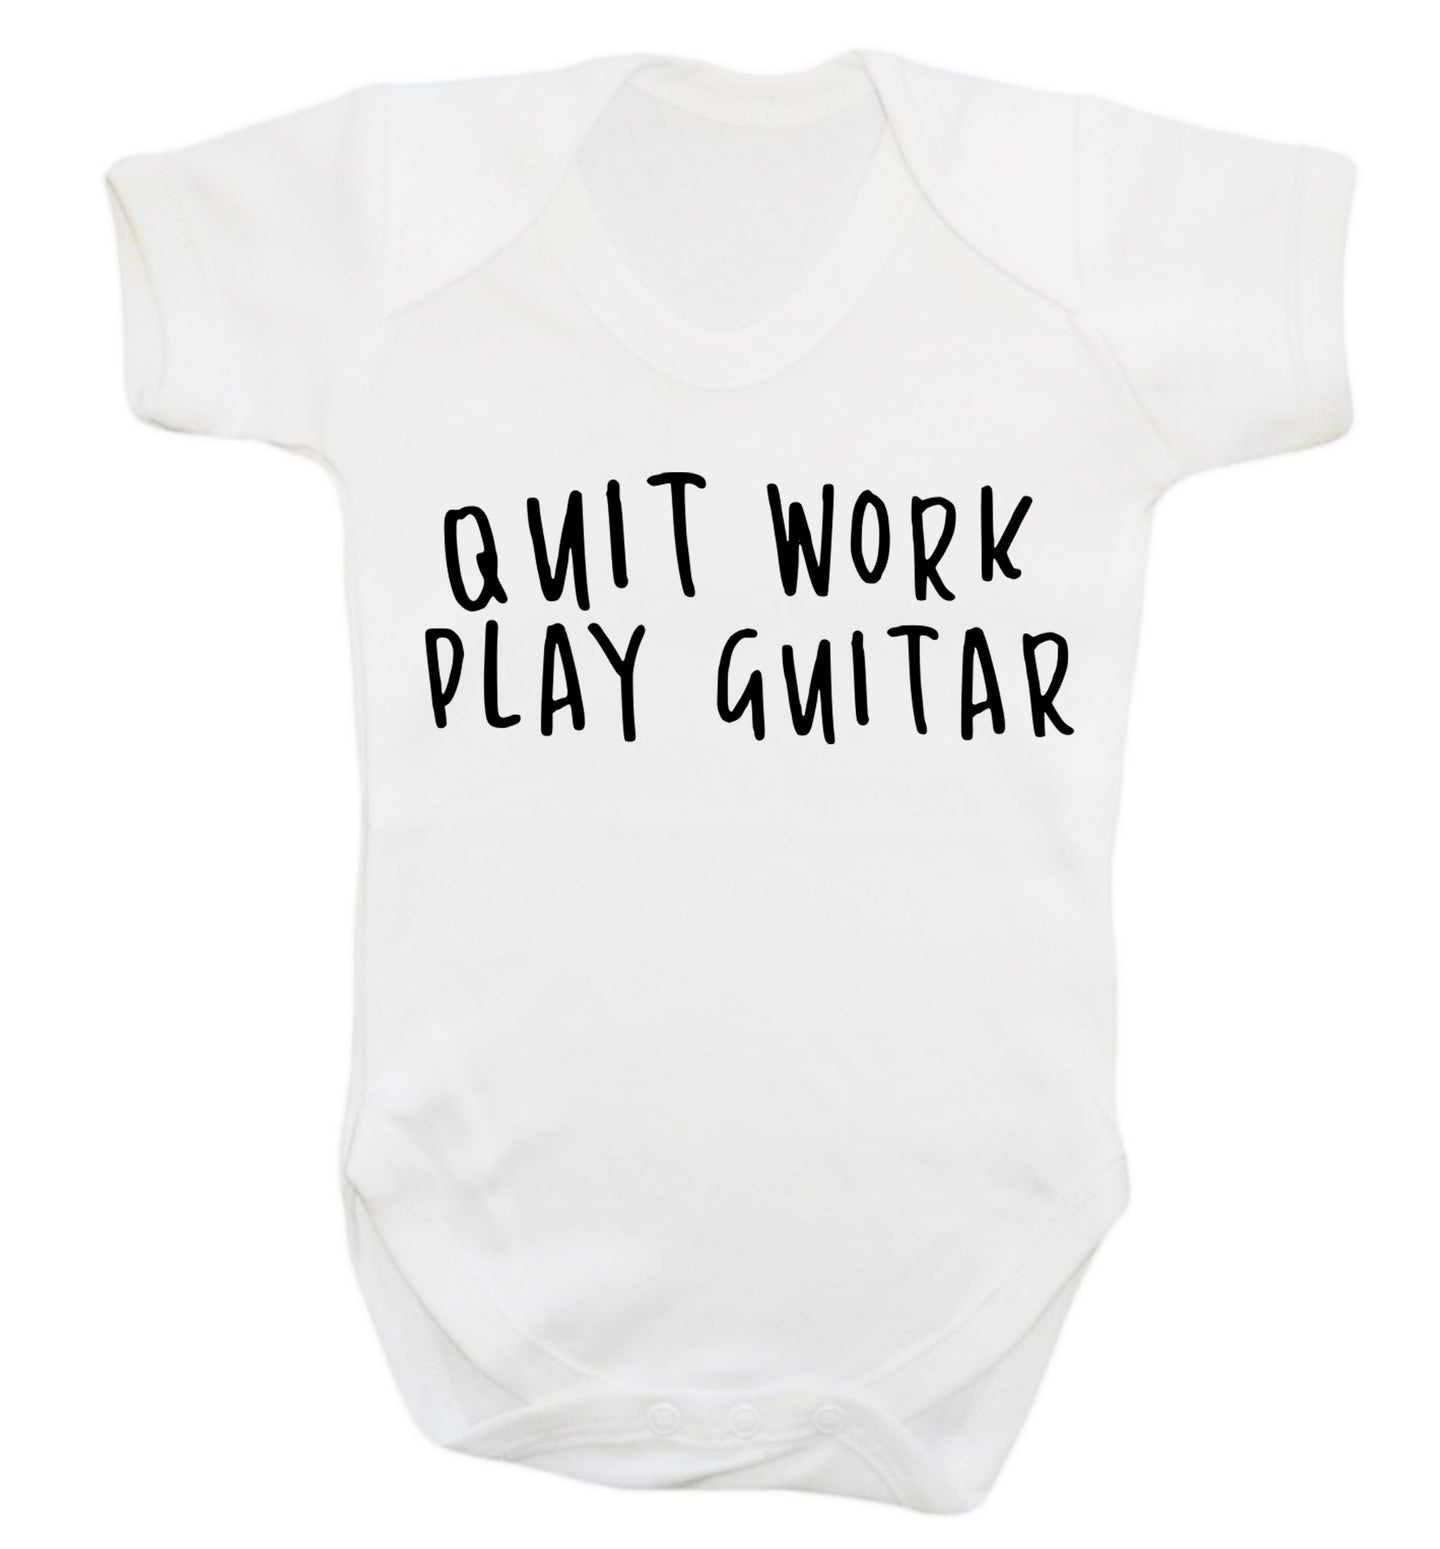 Quit work play guitar Baby Vest white 18-24 months